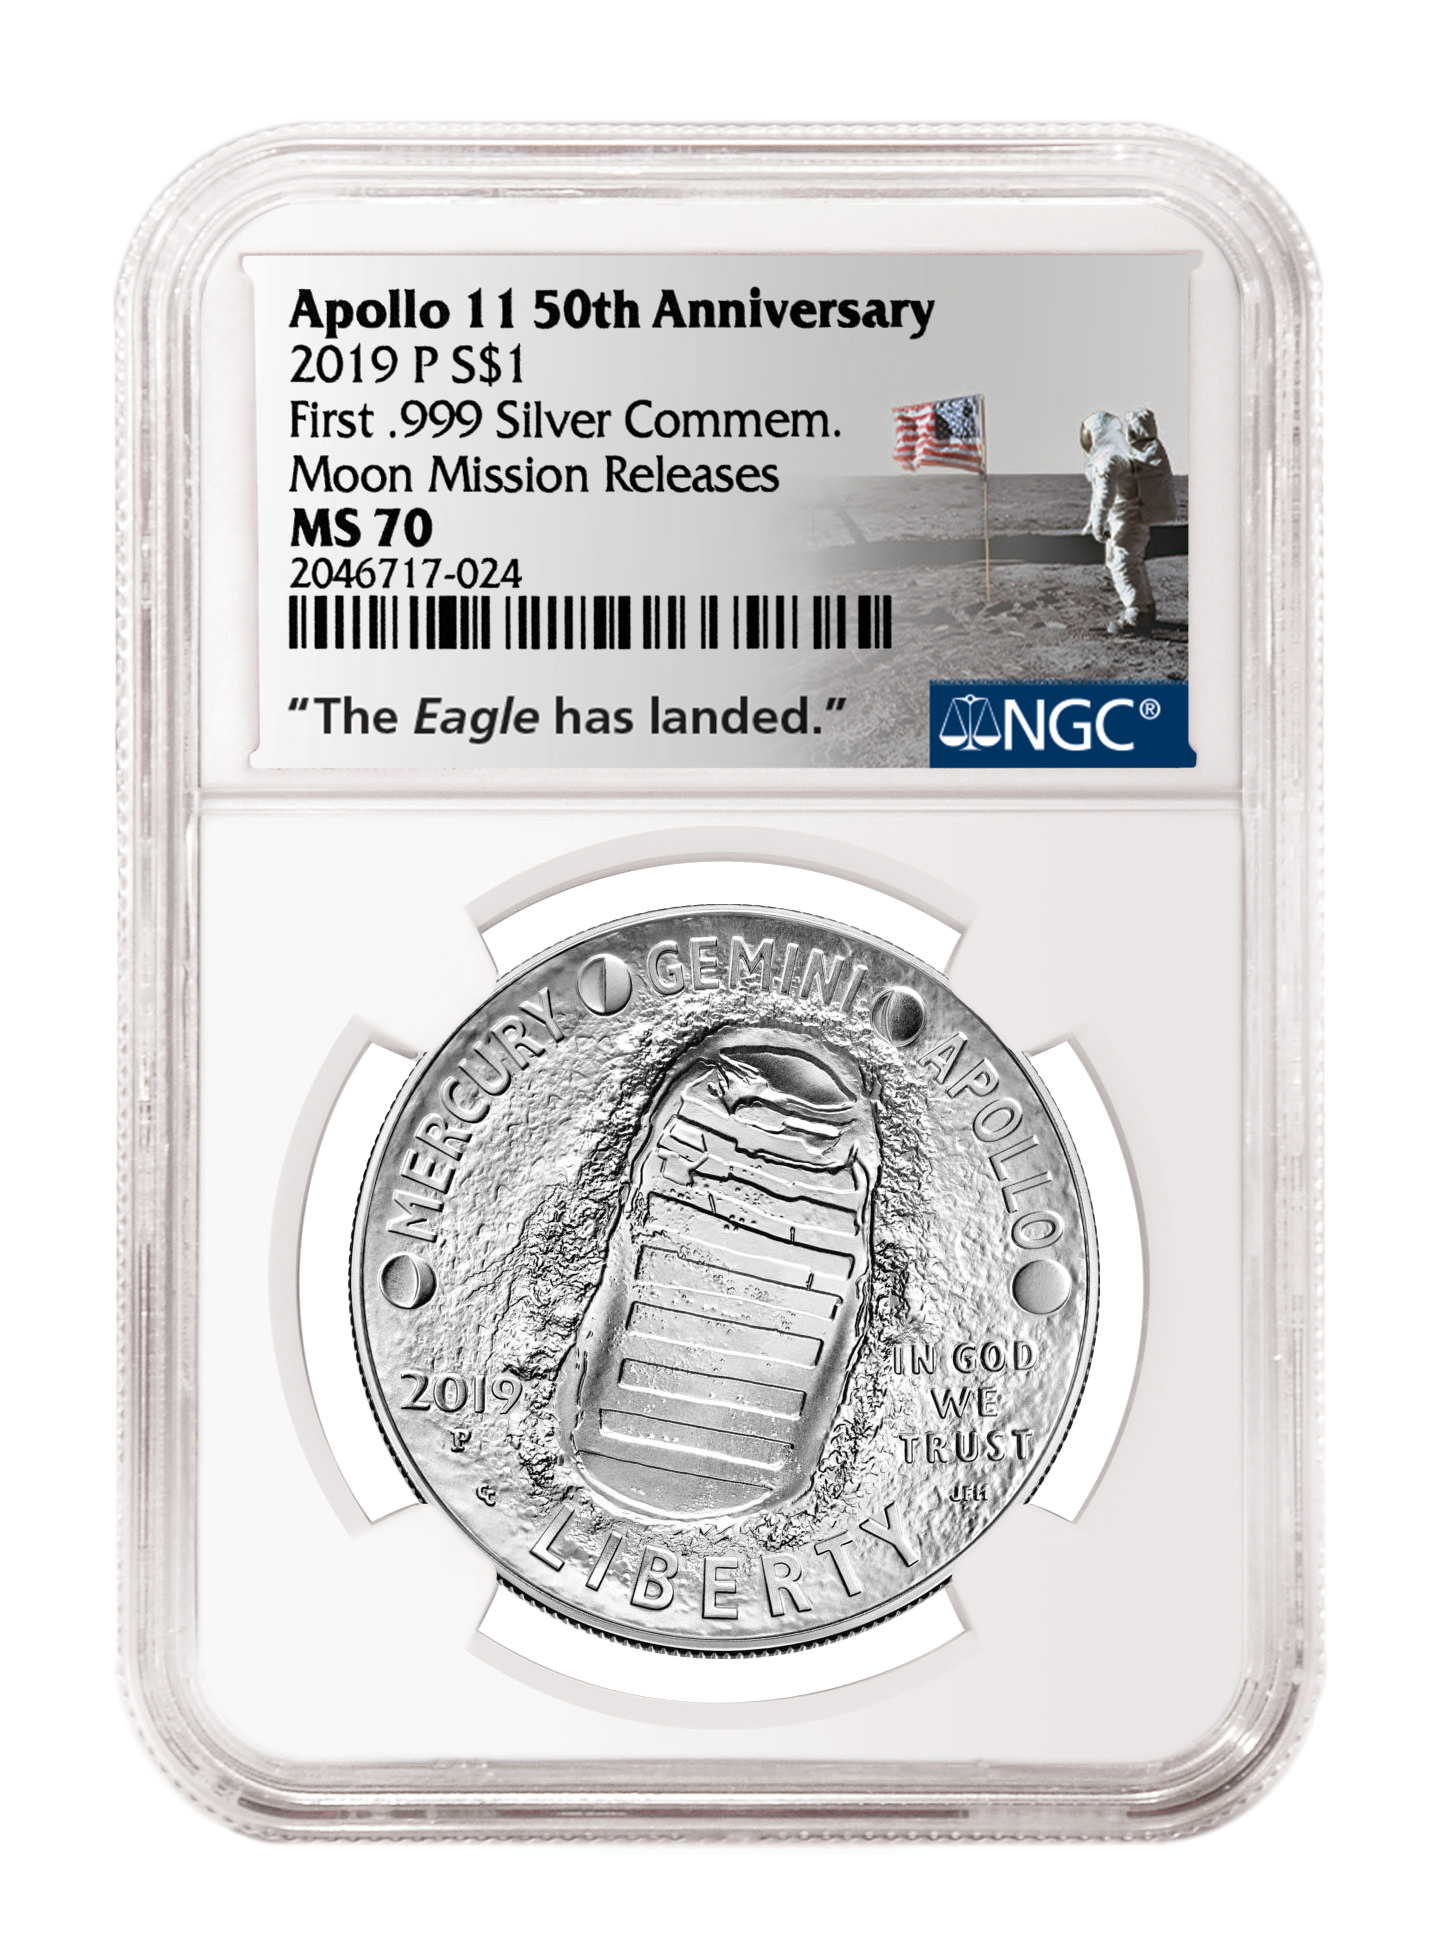 main image for Press Release: Special NGC Label and Designation for Apollo 11 Anniversary Week